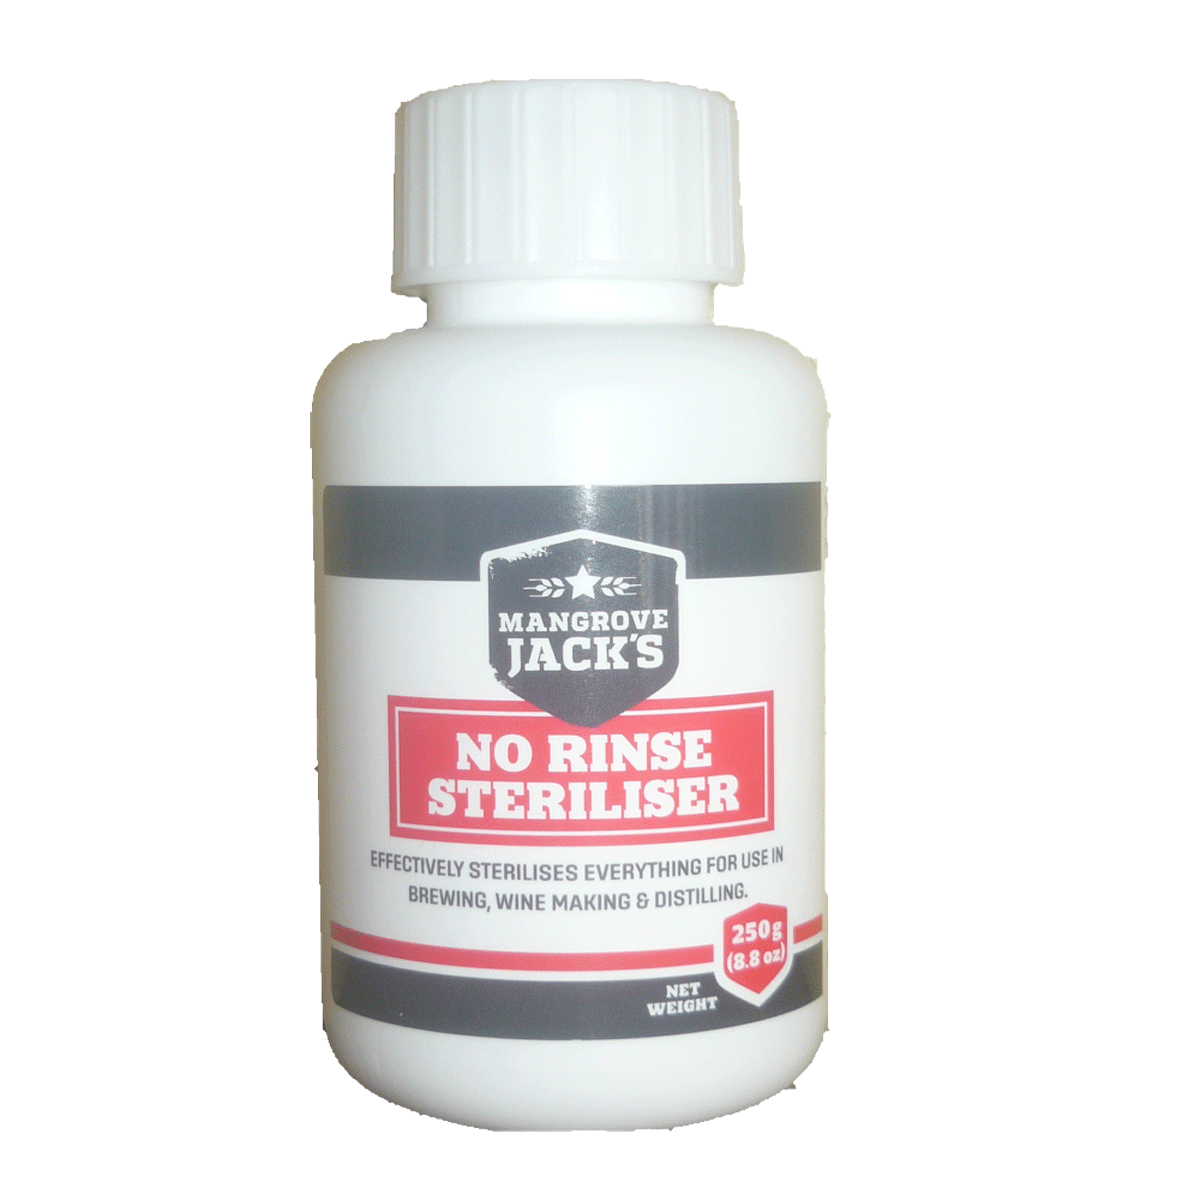 No rinse sterilizer - Mangrove Jacks 250g Bottle